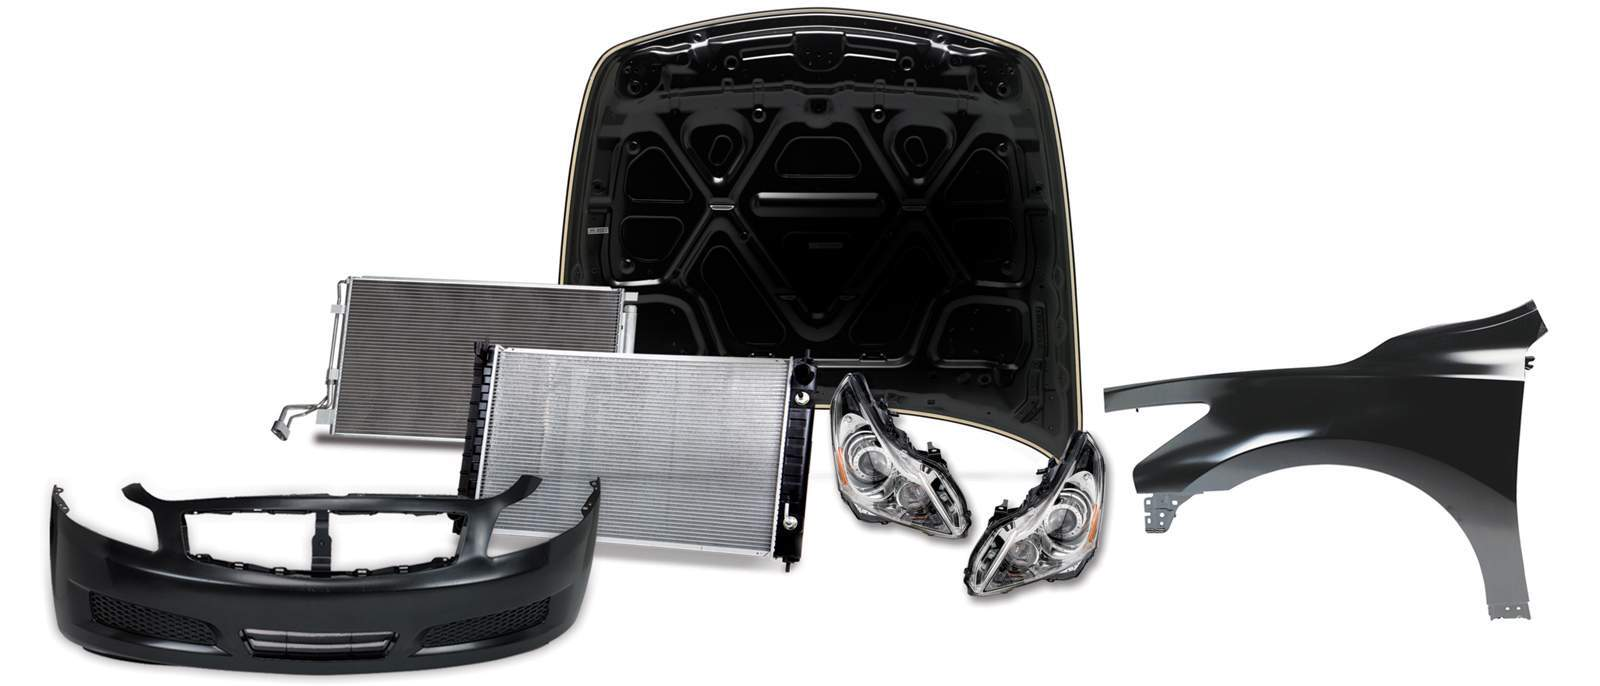 infinity compressor c and aftermarket kit autoparts ac components a parts ck oem infiniti